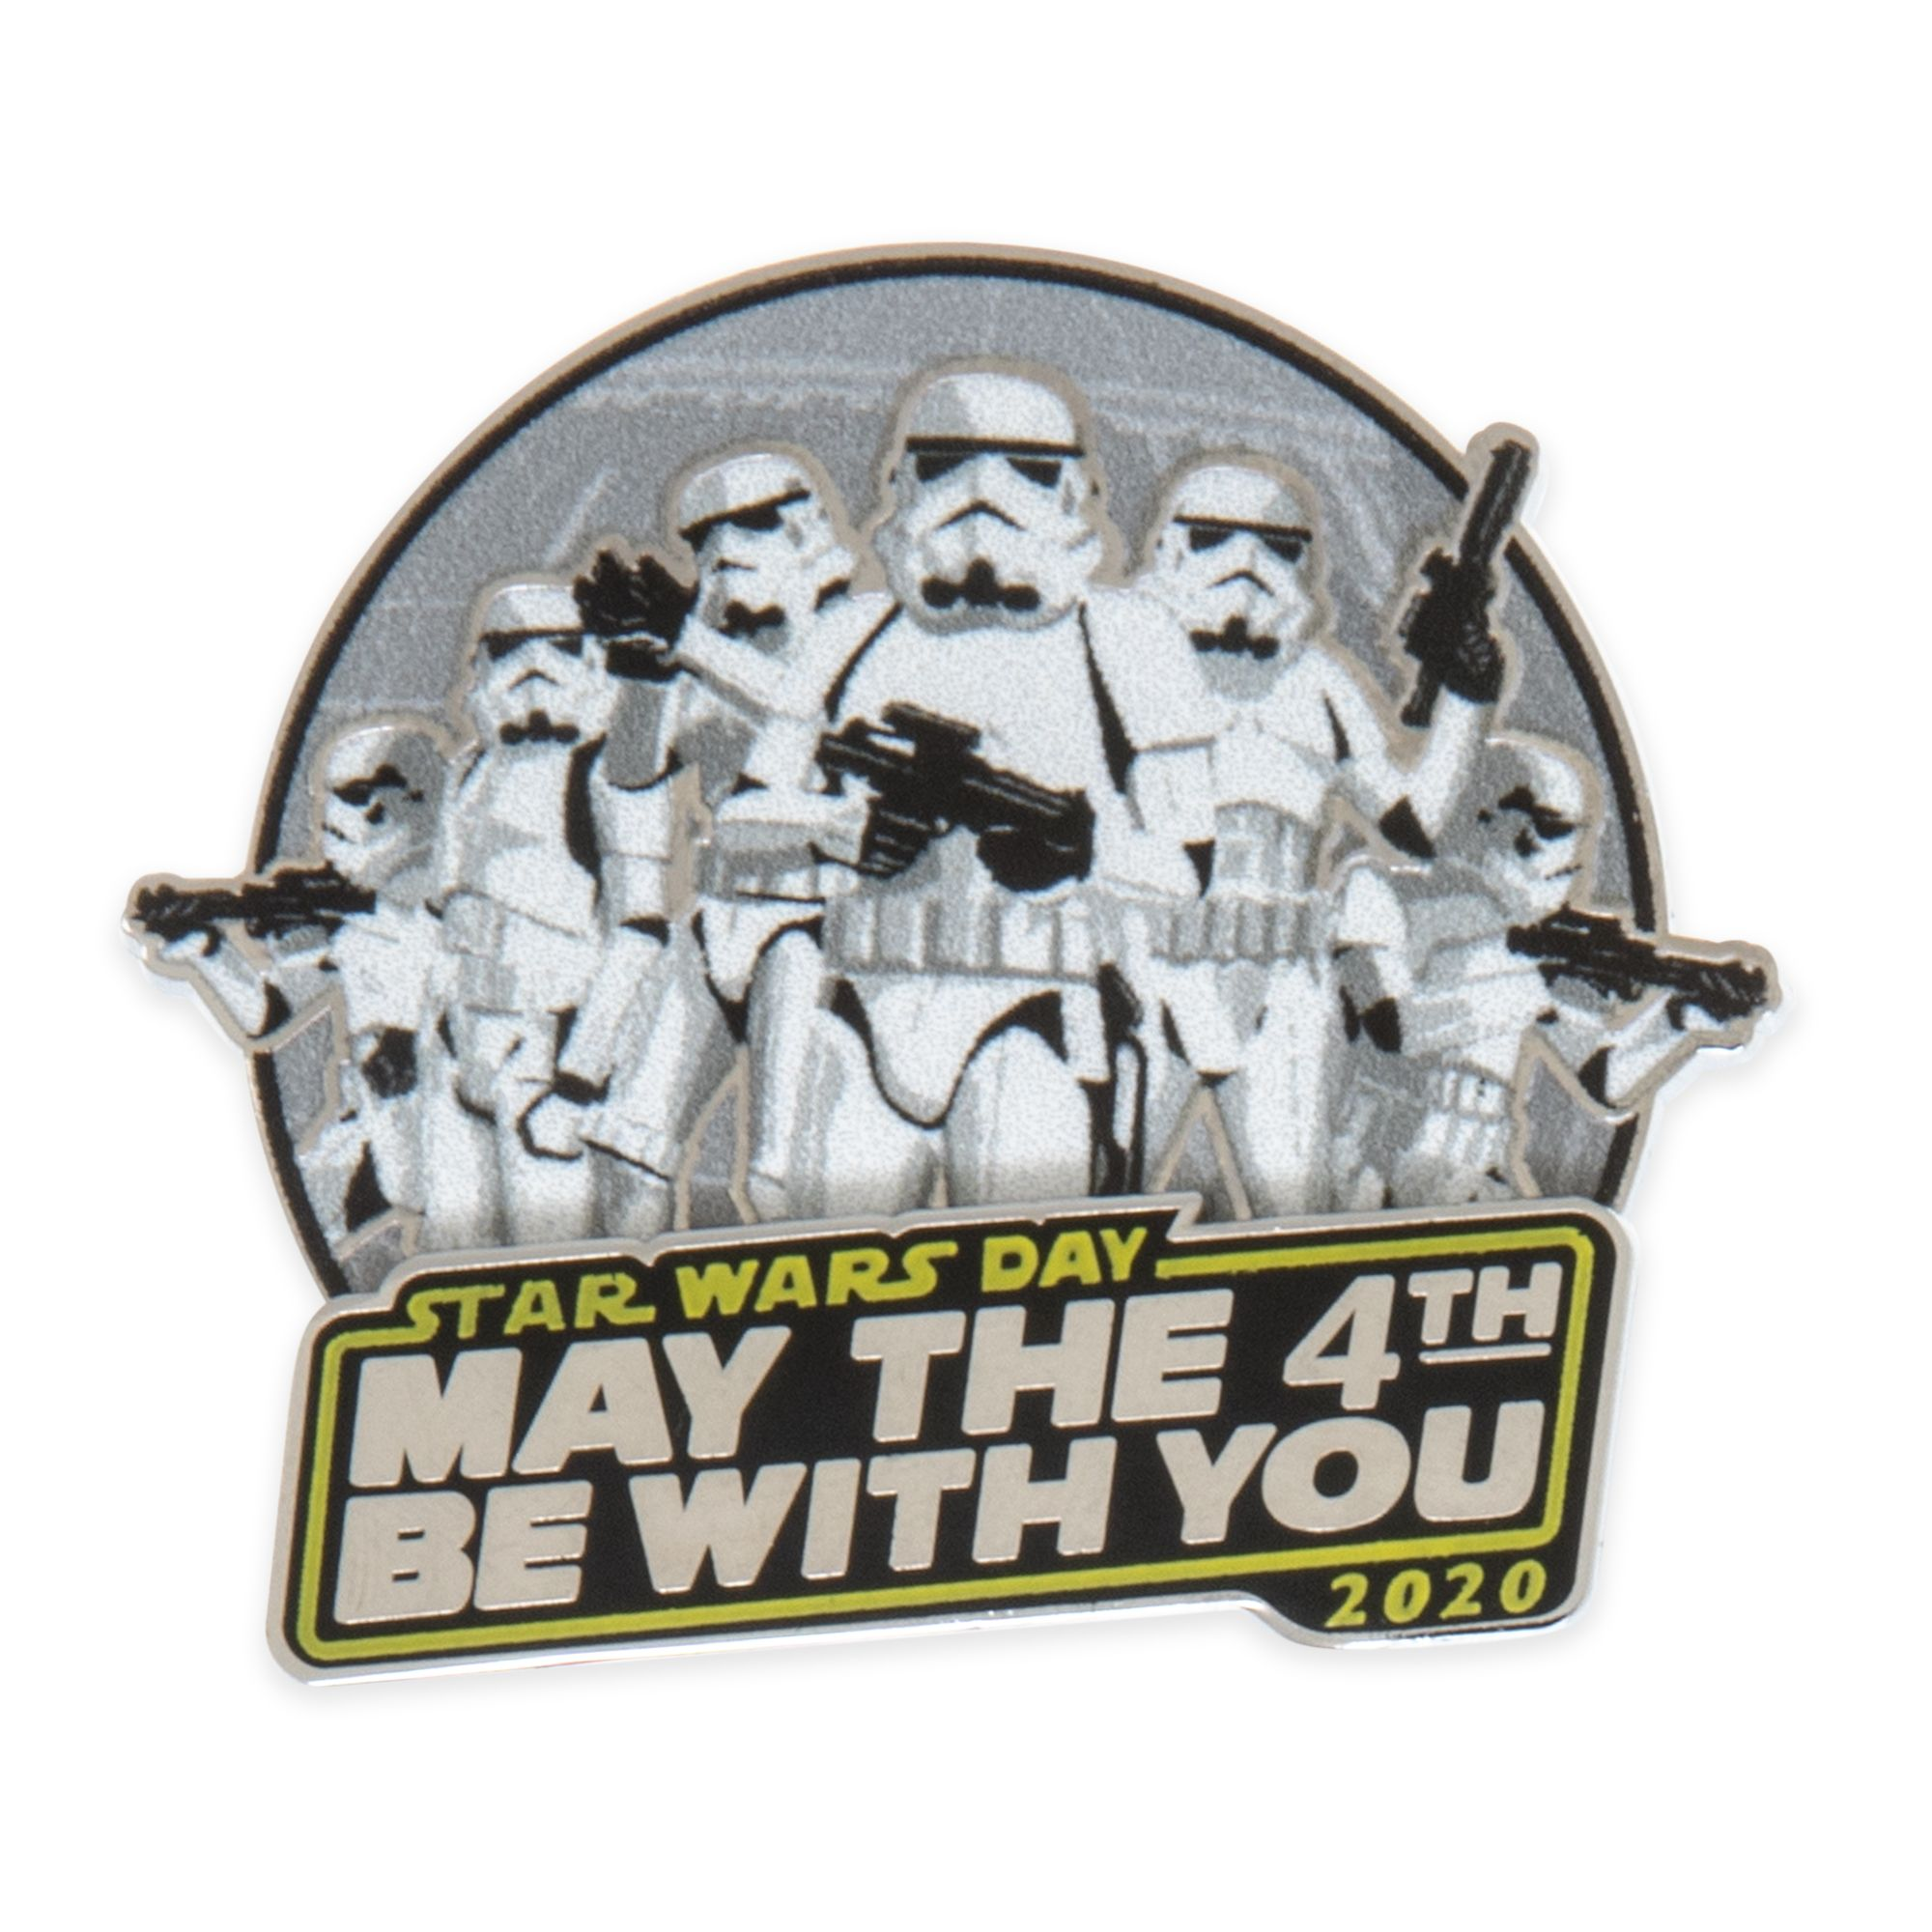 Why is May 4th Star Wars Day?